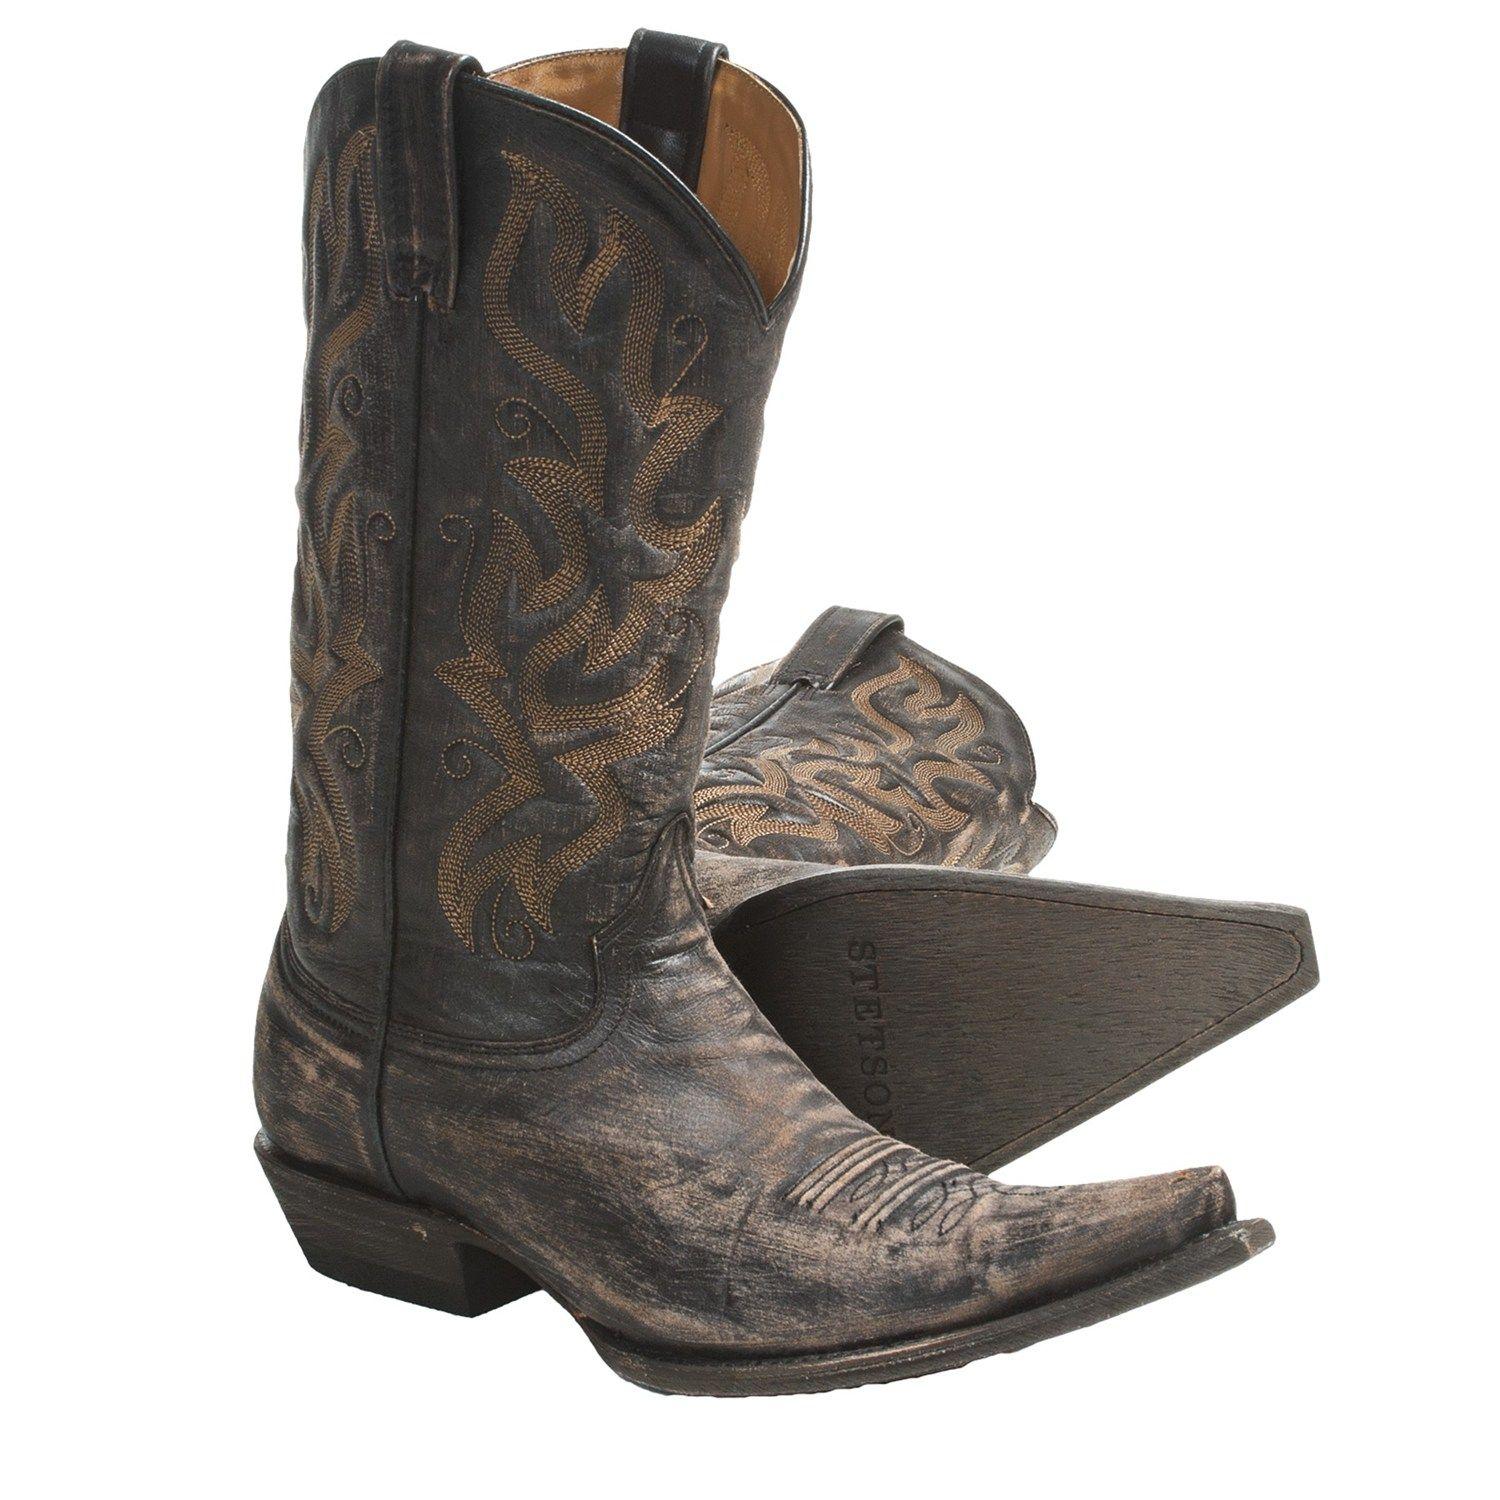 Stetson Fashion Snip Toe Cowboy Boots (For Men)